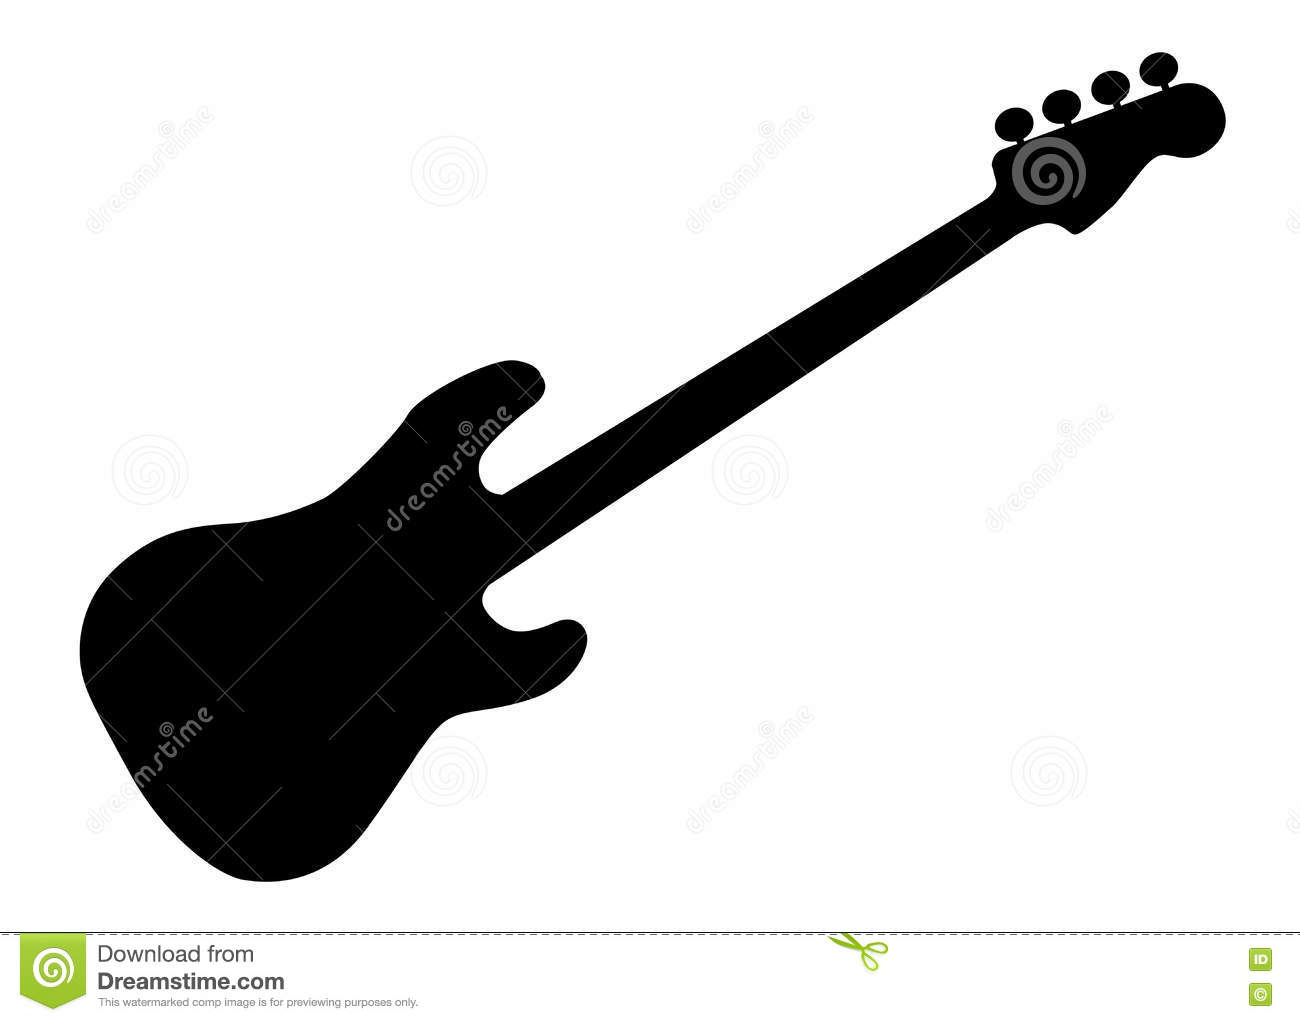 bass guitar silhouette stock vector illustration of stringed 79143546